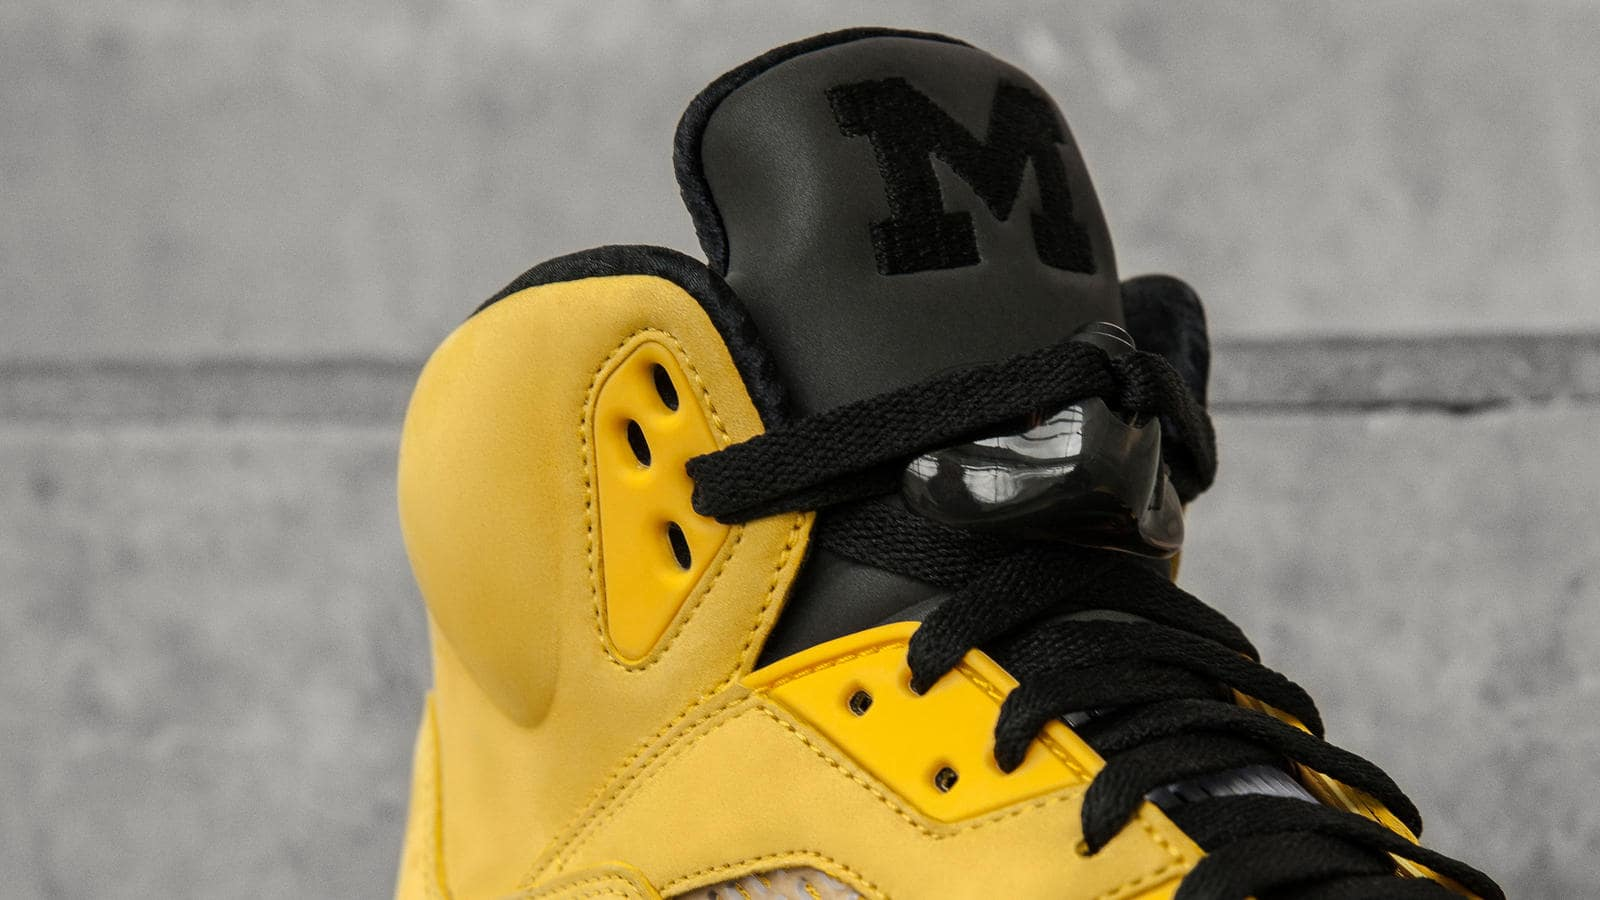 These Fab Five PE's will never release